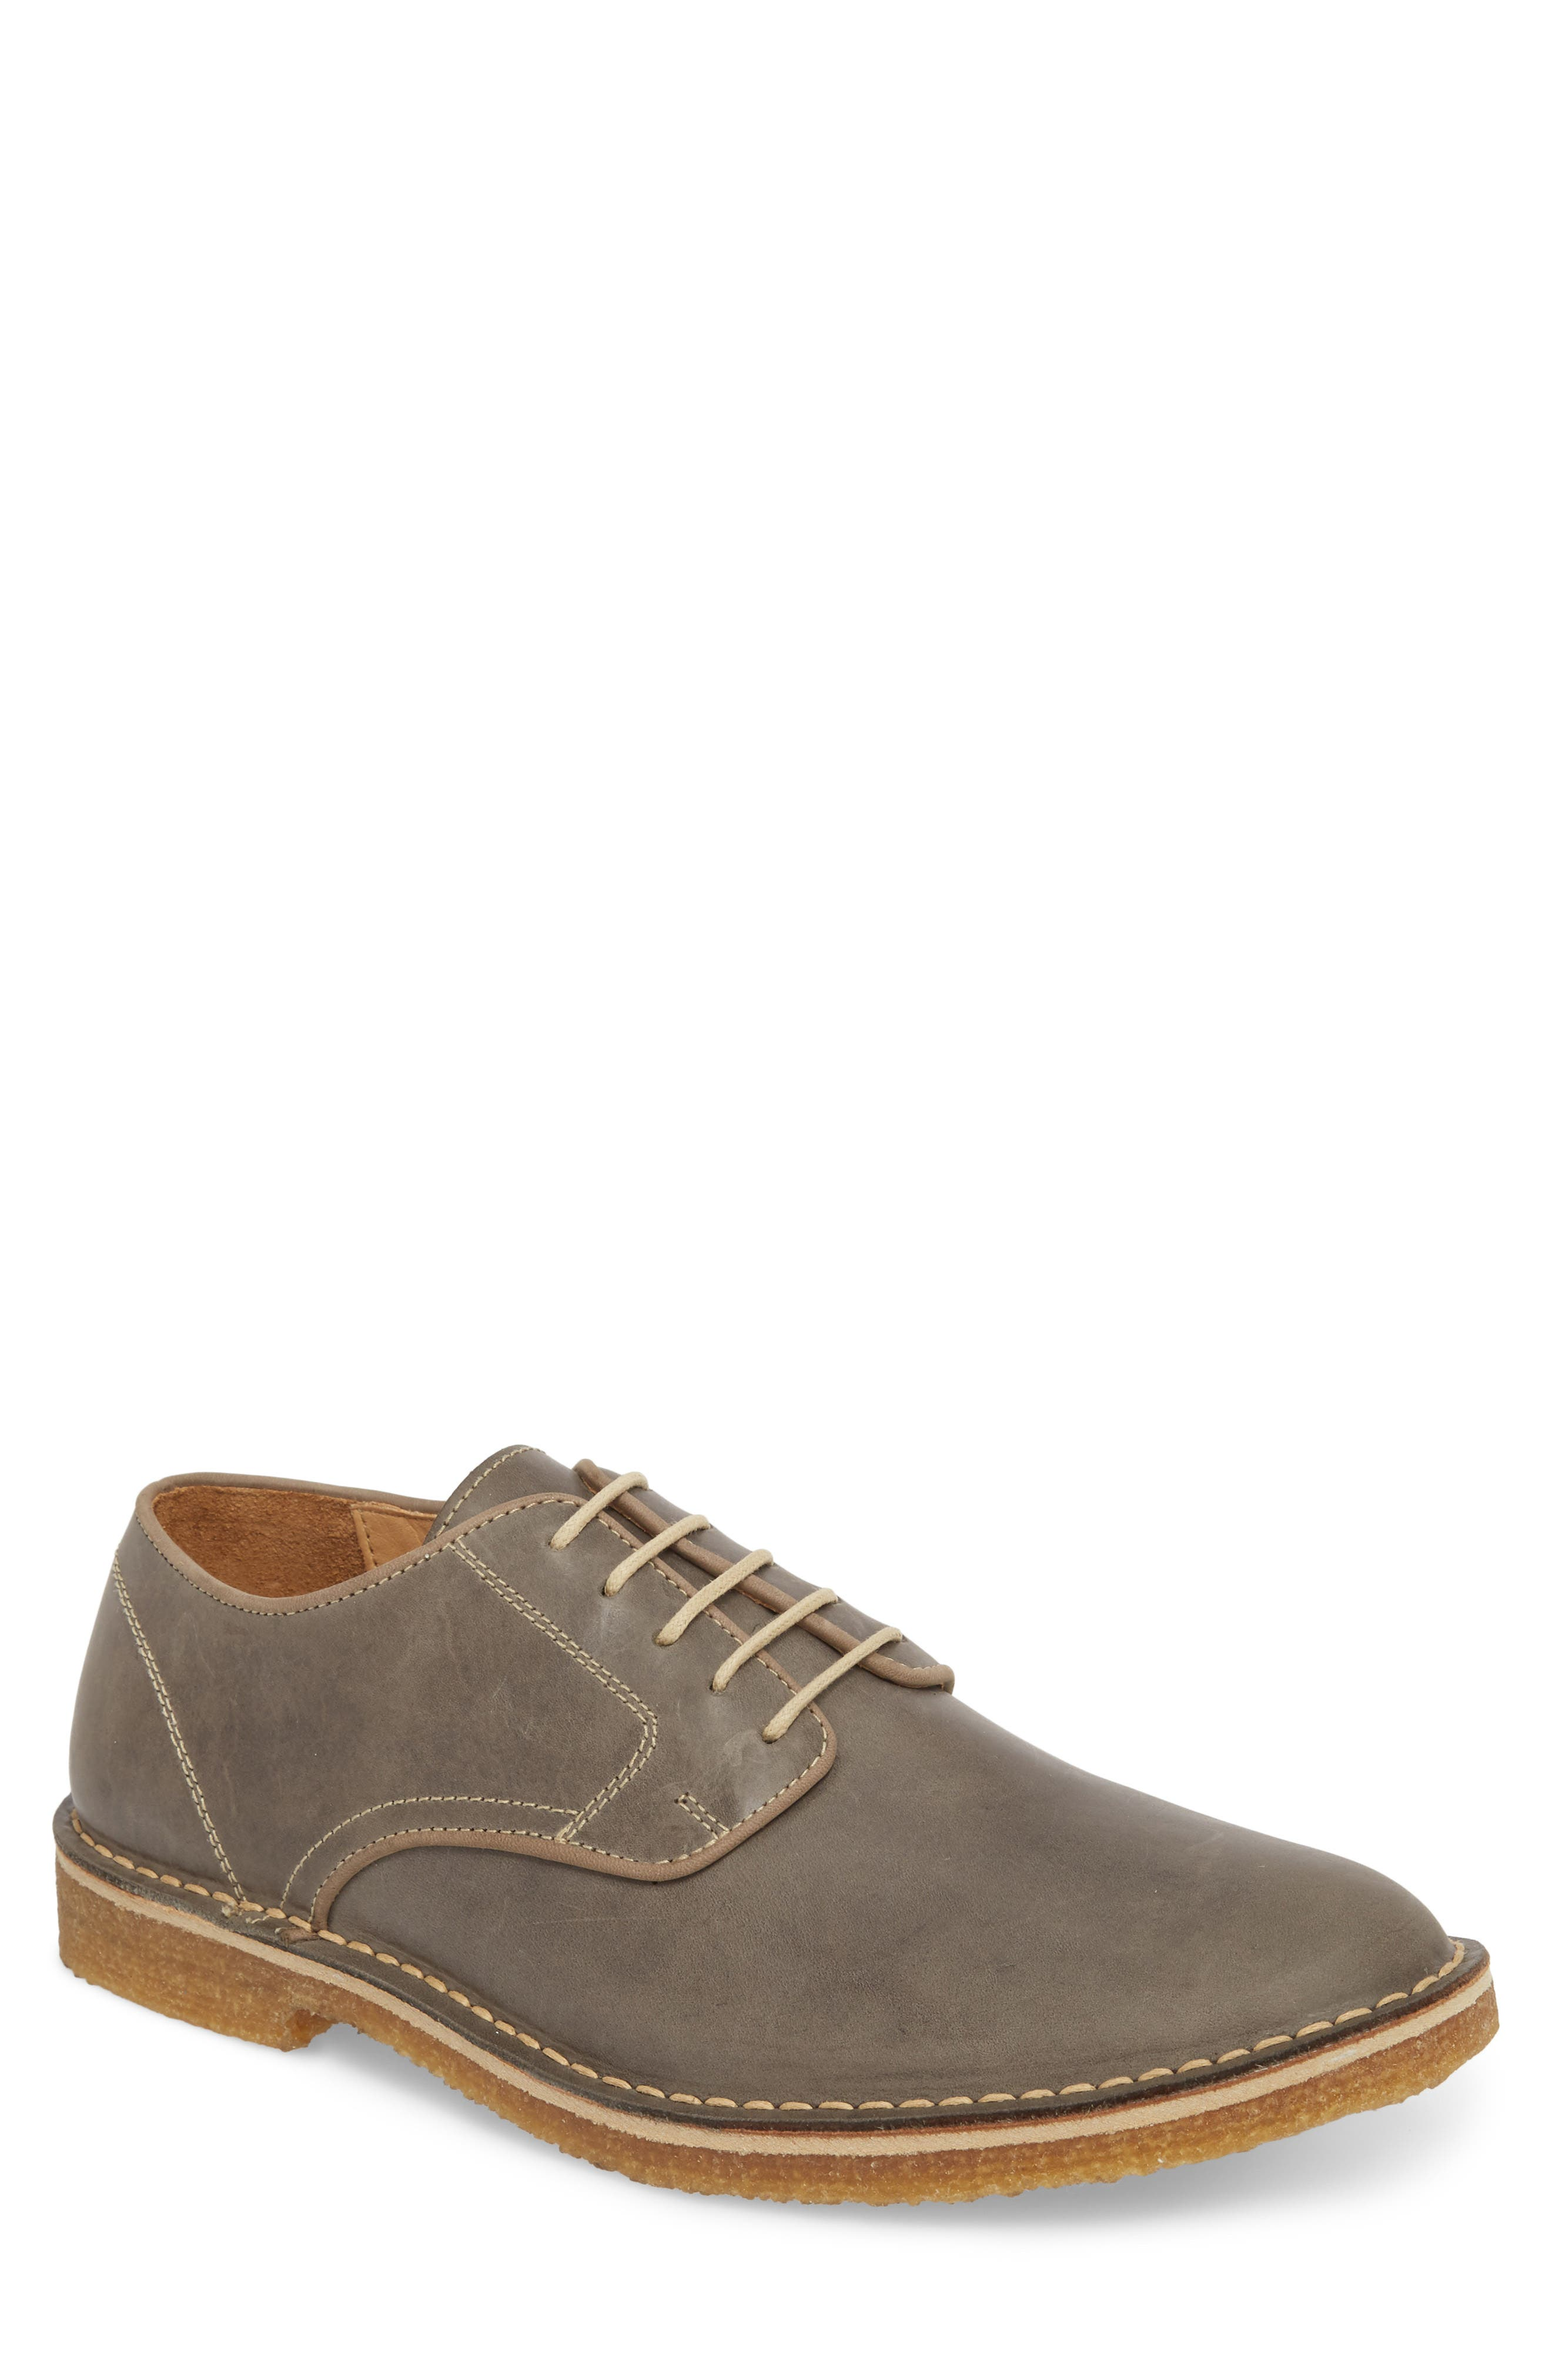 Crescent Buck Shoe,                         Main,                         color, Grey Leather